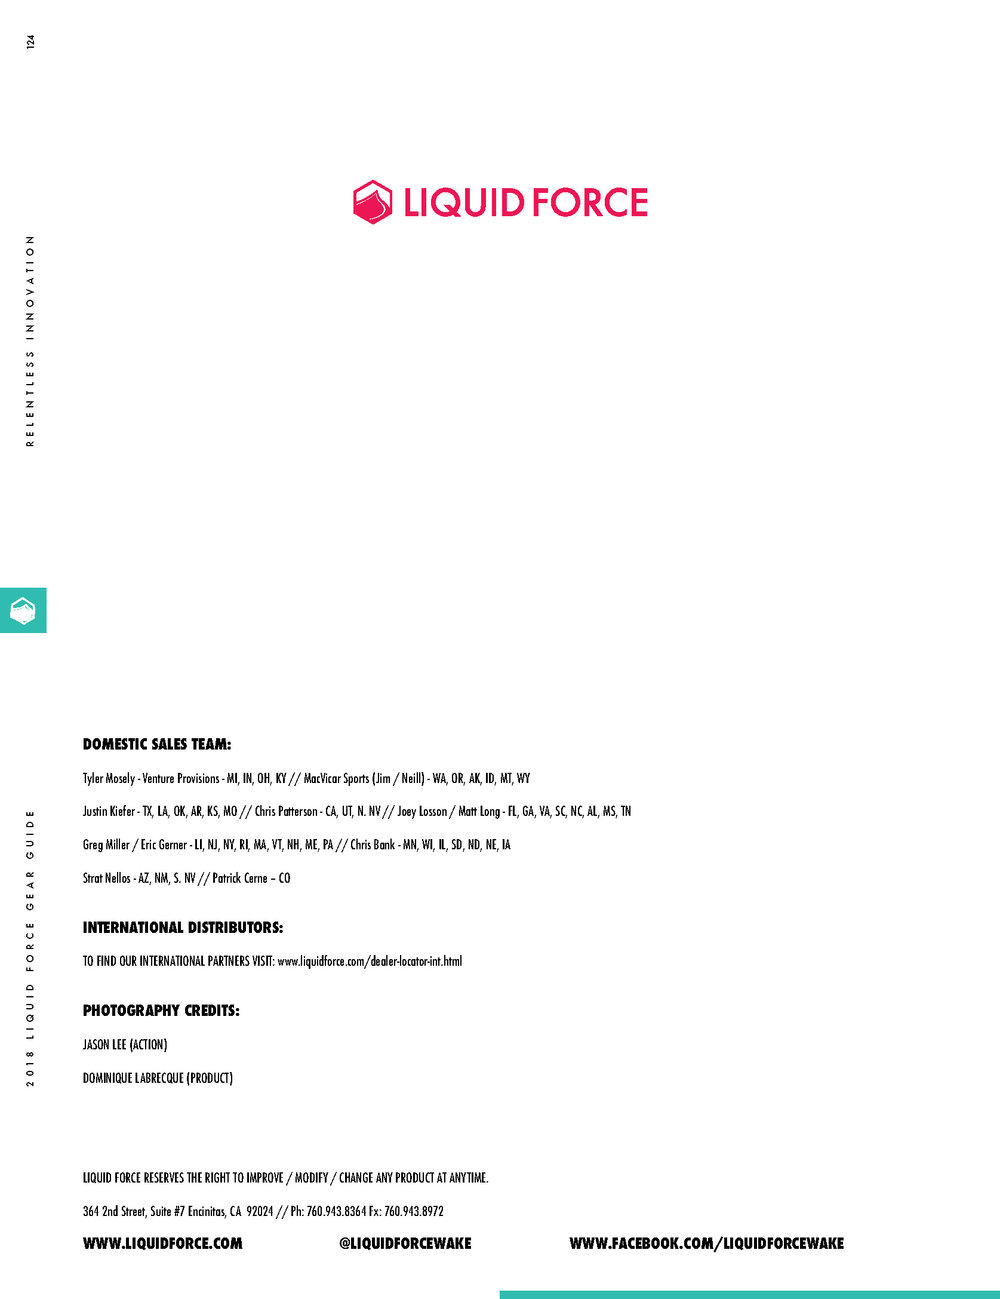 2018_LIQUIDFORCE_PRODUCT CATALOG-DIGITAL_Page_63.jpg